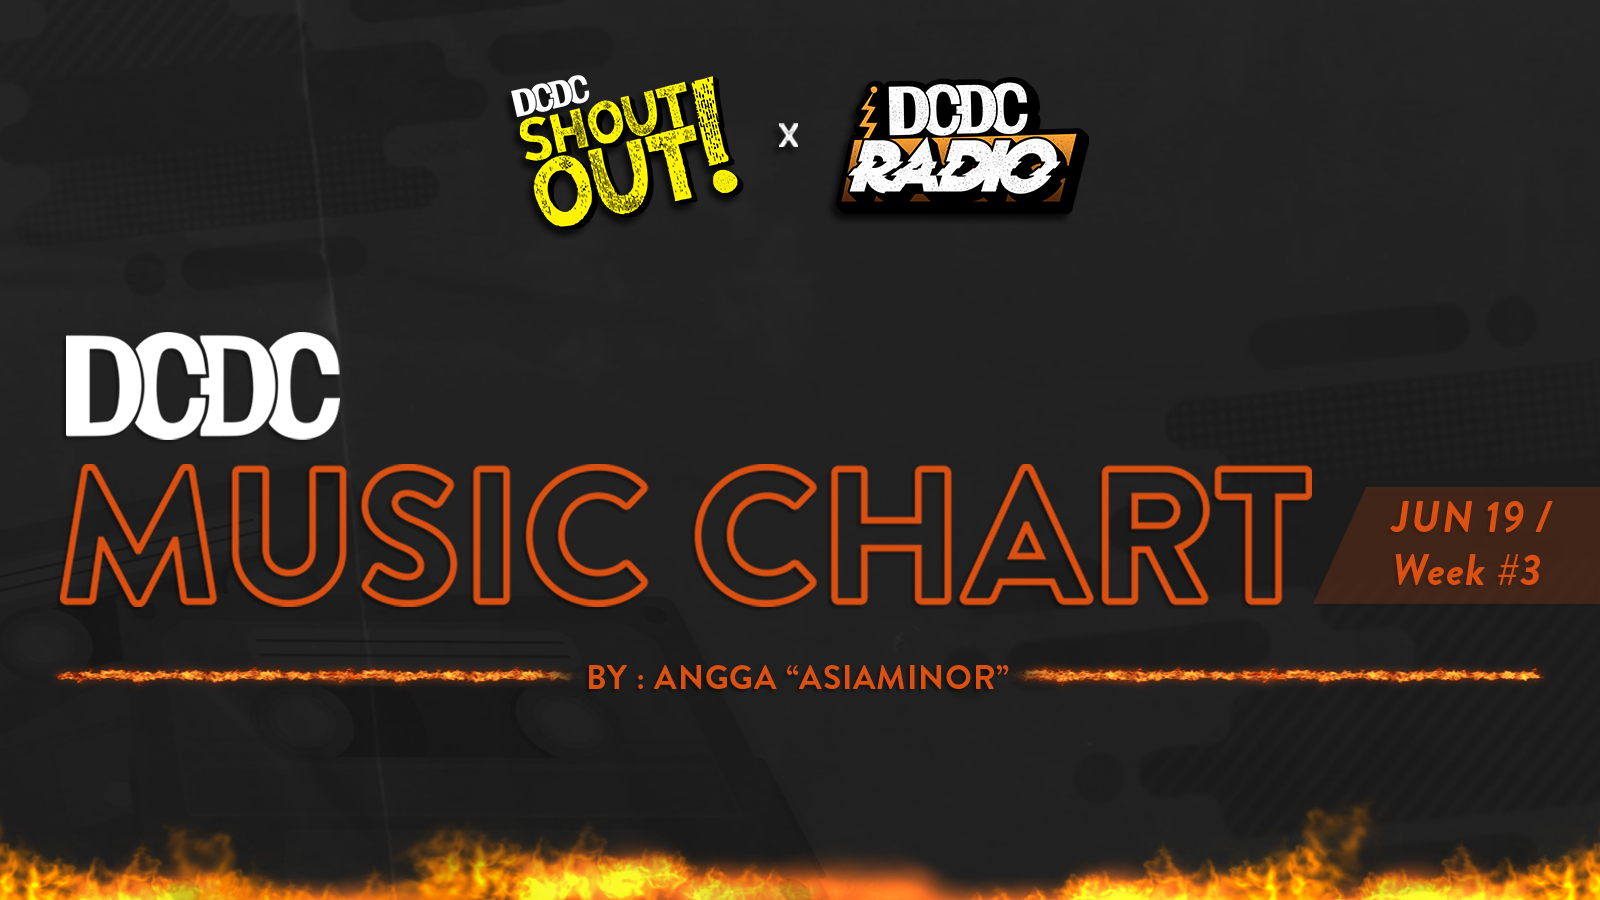 DCDC Music Chart - #3rd Week of June 2019